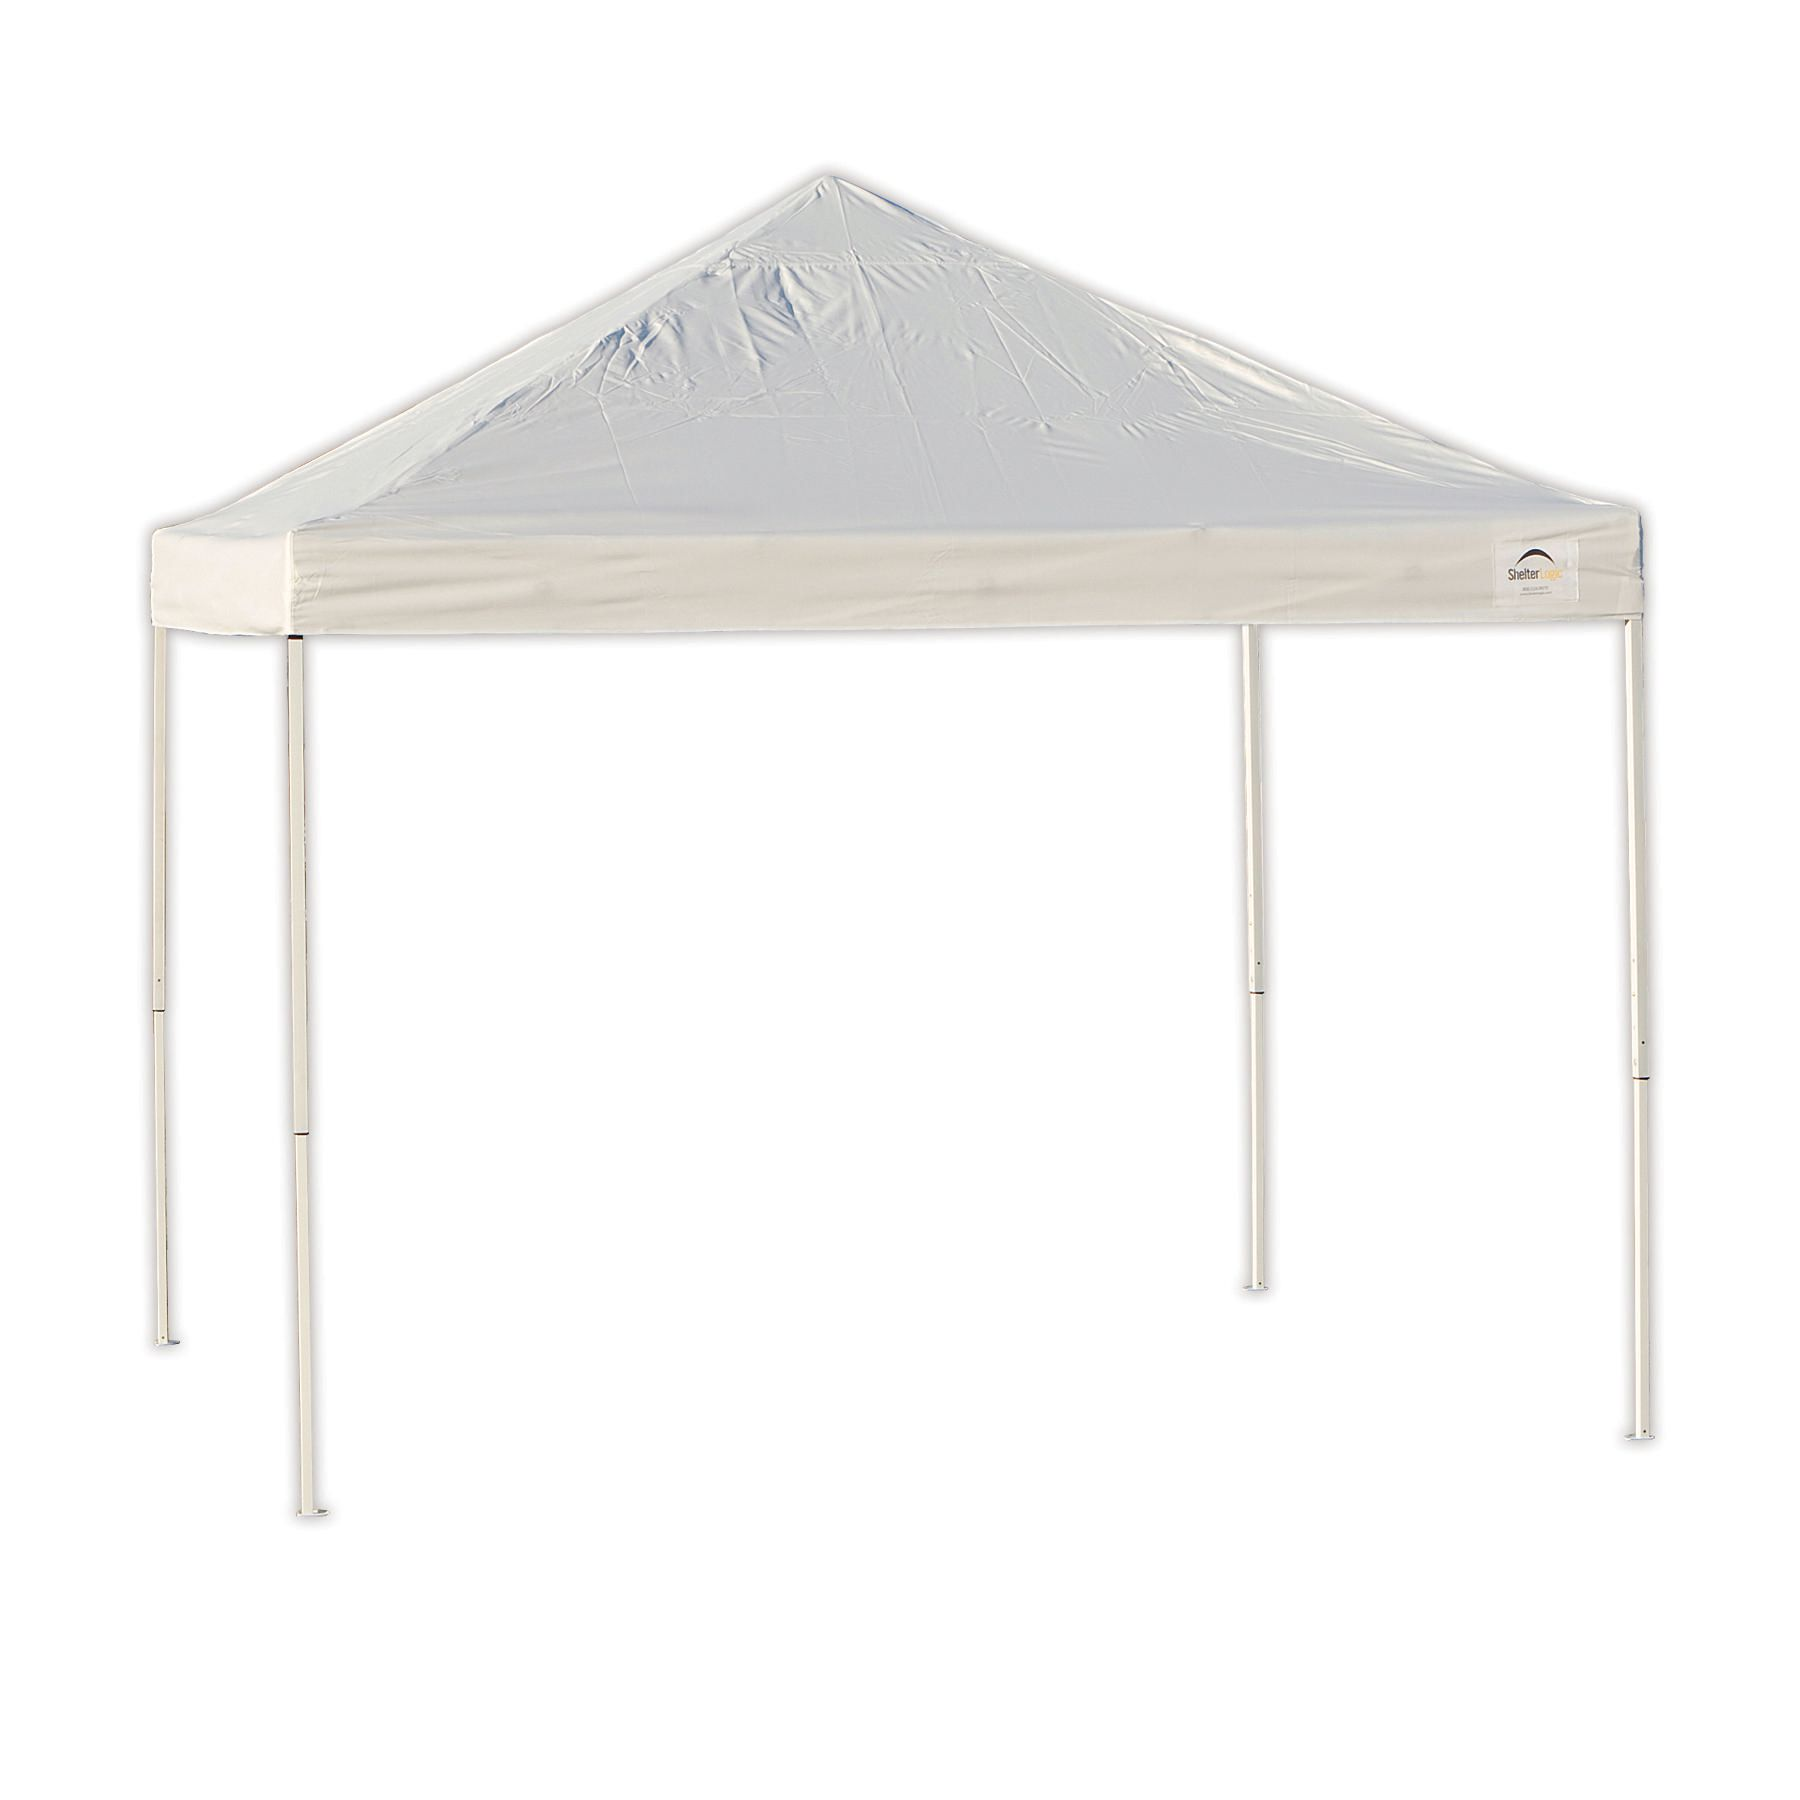 ShelterLogic Pro 10 x 10 White Straight Leg Pop-Up Canopy | Walmart Canada  sc 1 st  Walmart Canada & ShelterLogic Pro 10 x 10 White Straight Leg Pop-Up Canopy ...